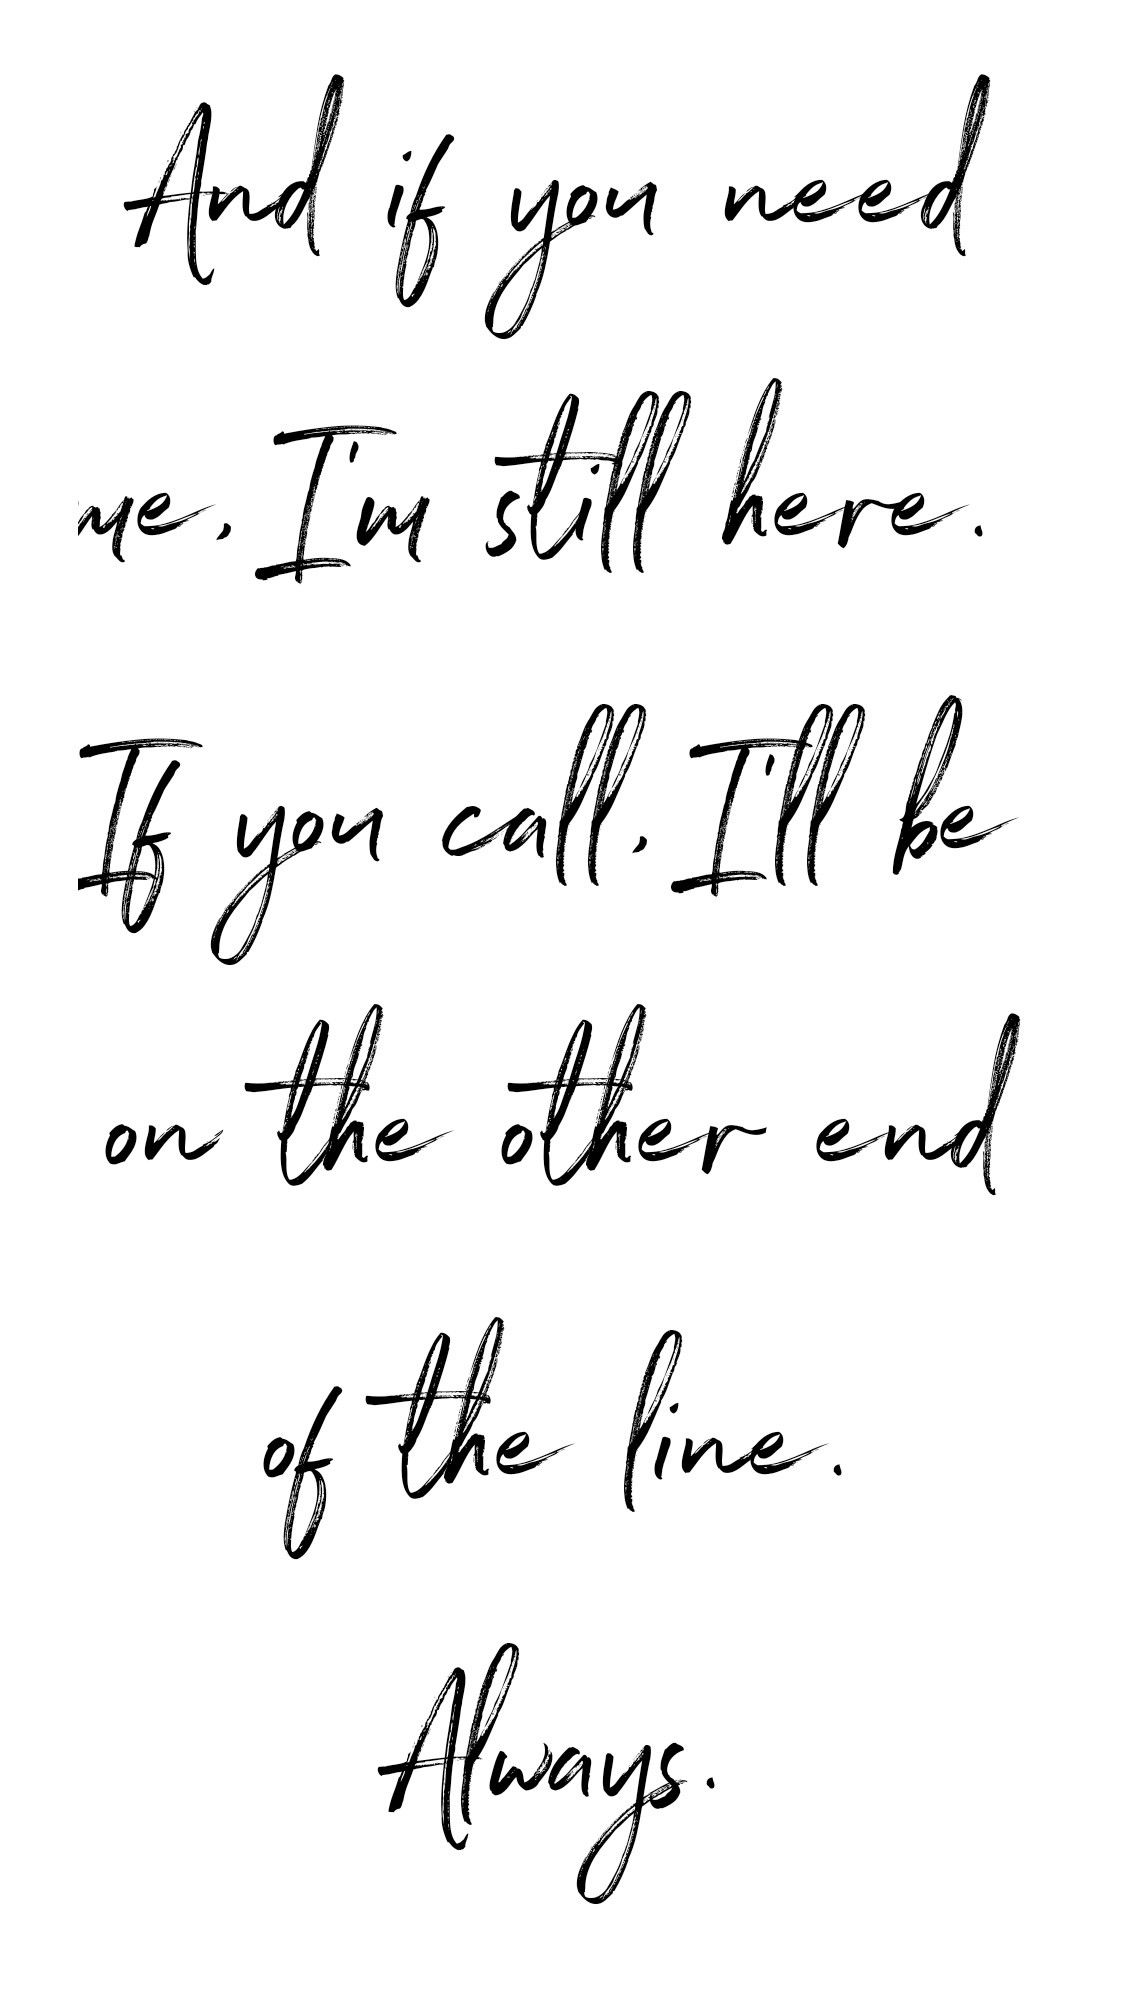 I Ll Always Be Here For You Quotes : always, quotes, Still, Here., Call,, Other, Line., Always., Always, Quotes,, Talking, Yourself, Quotes